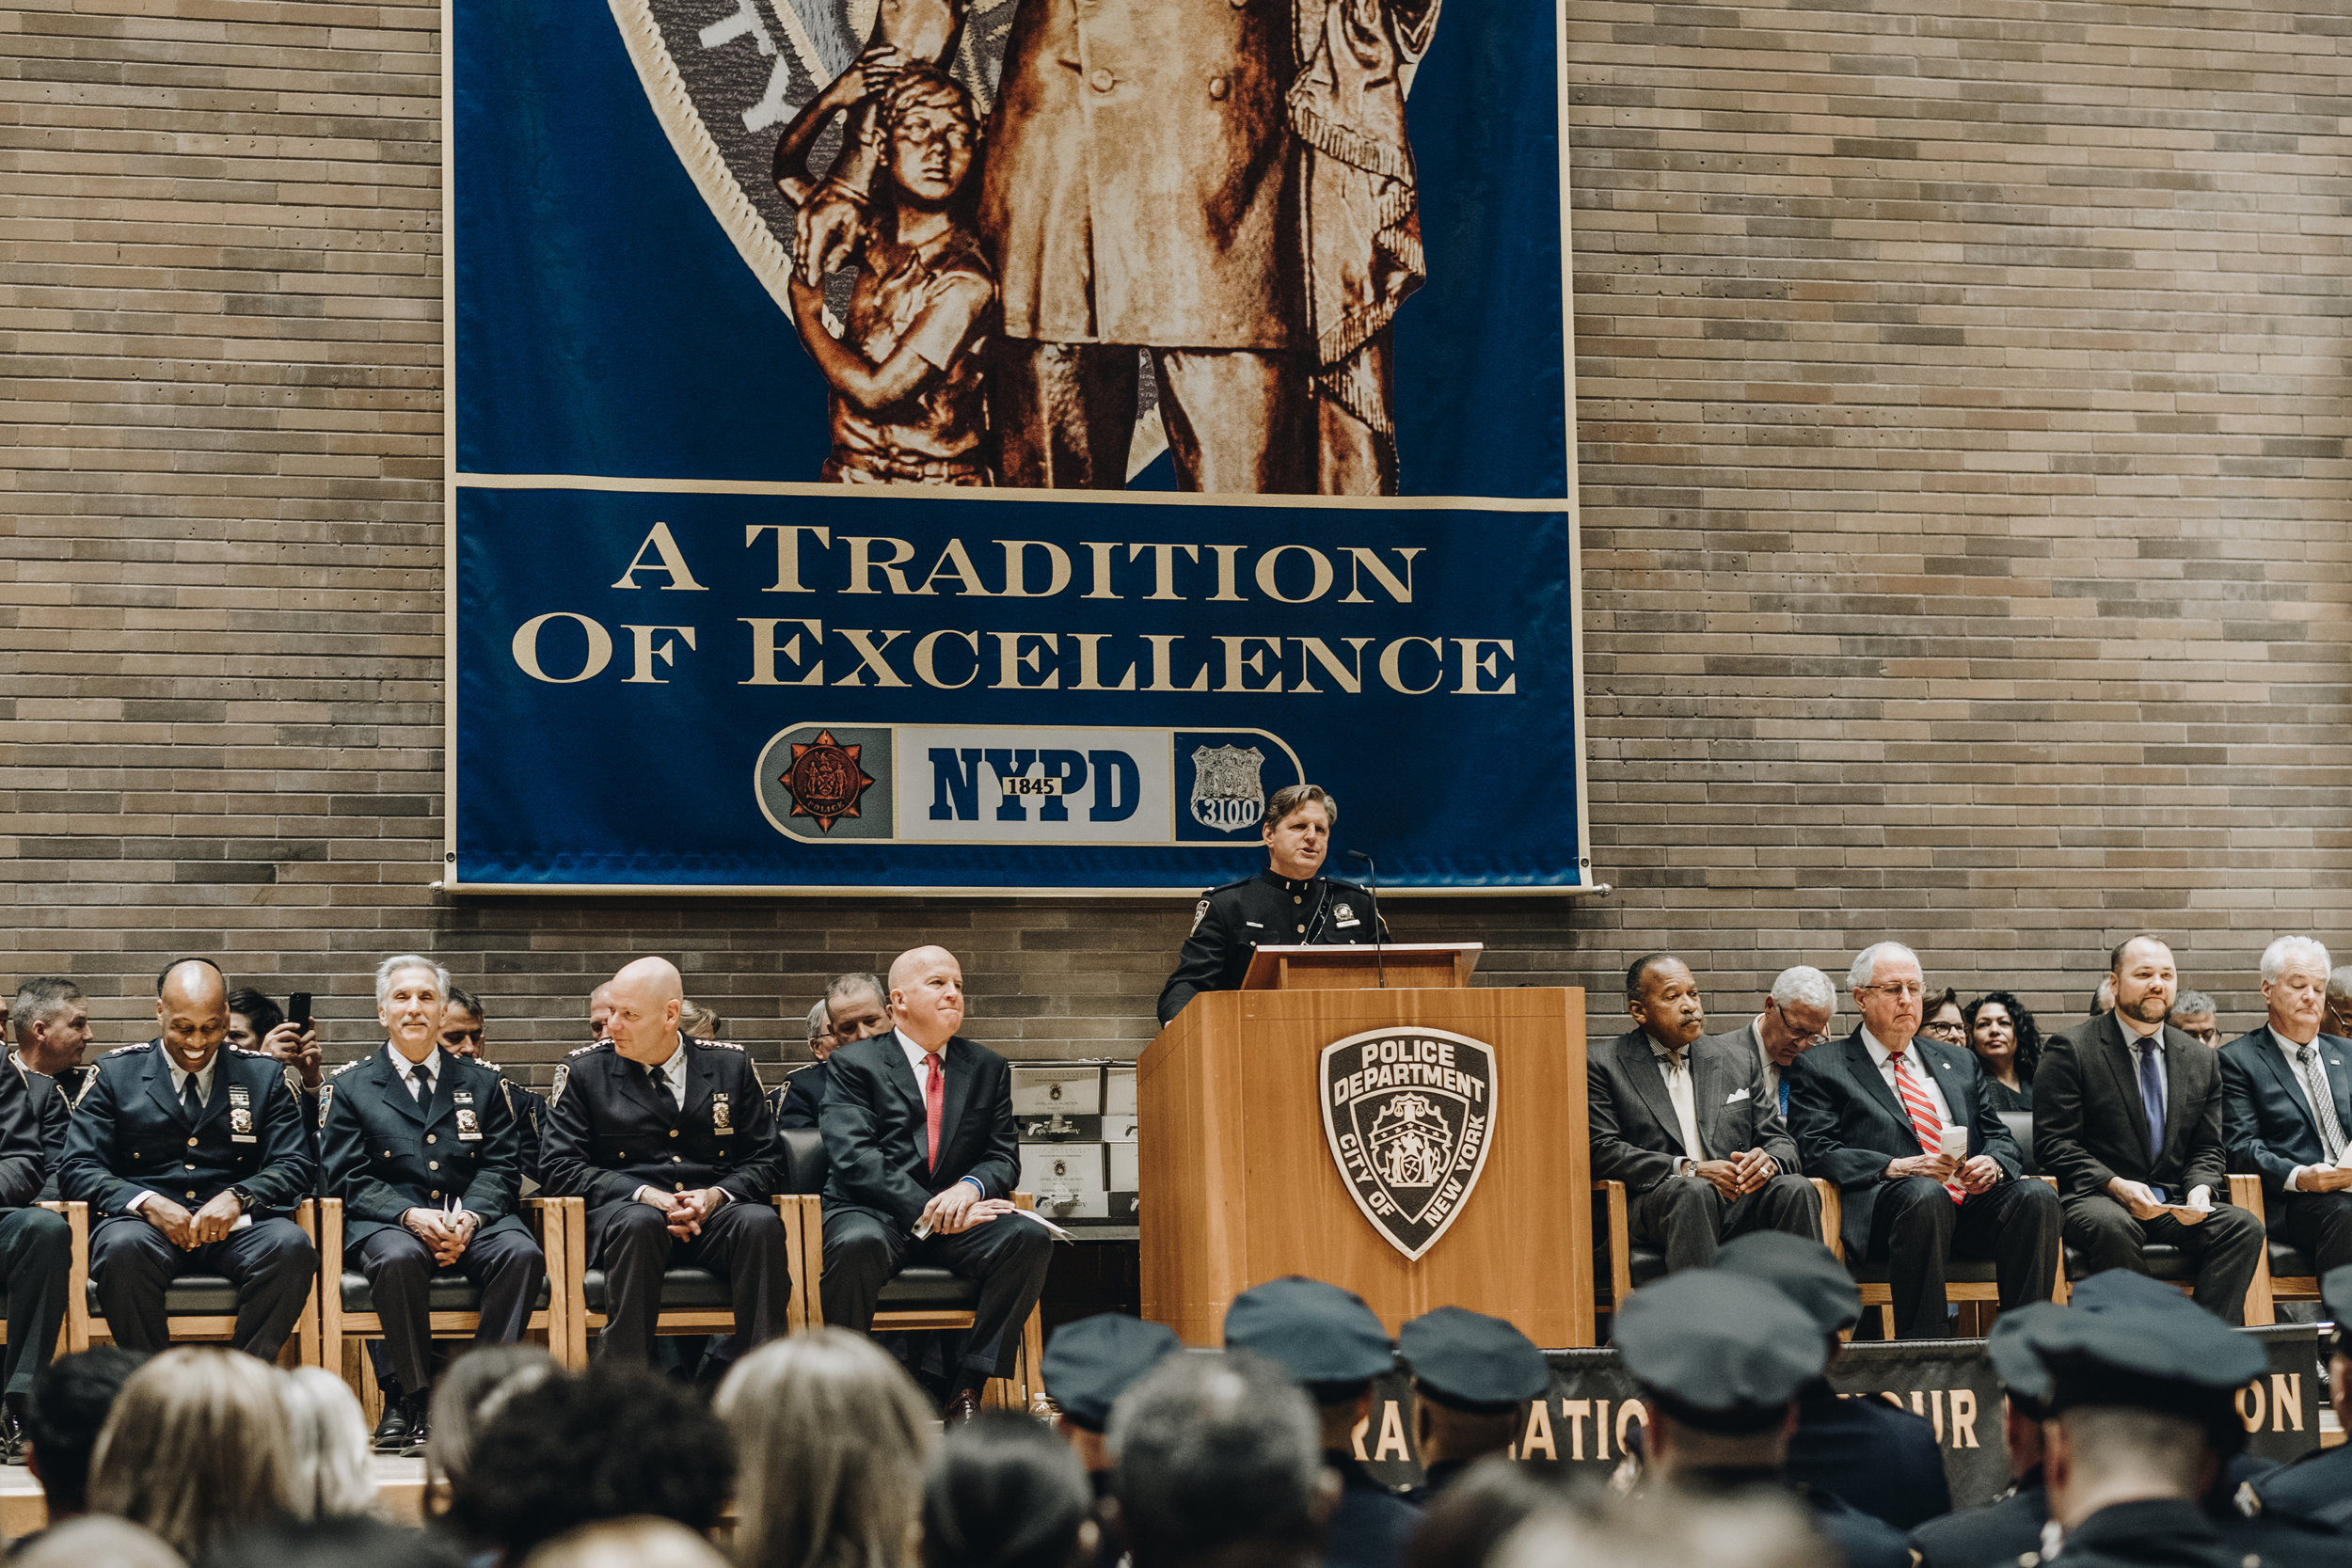 NYPD_Promotions-29.jpg